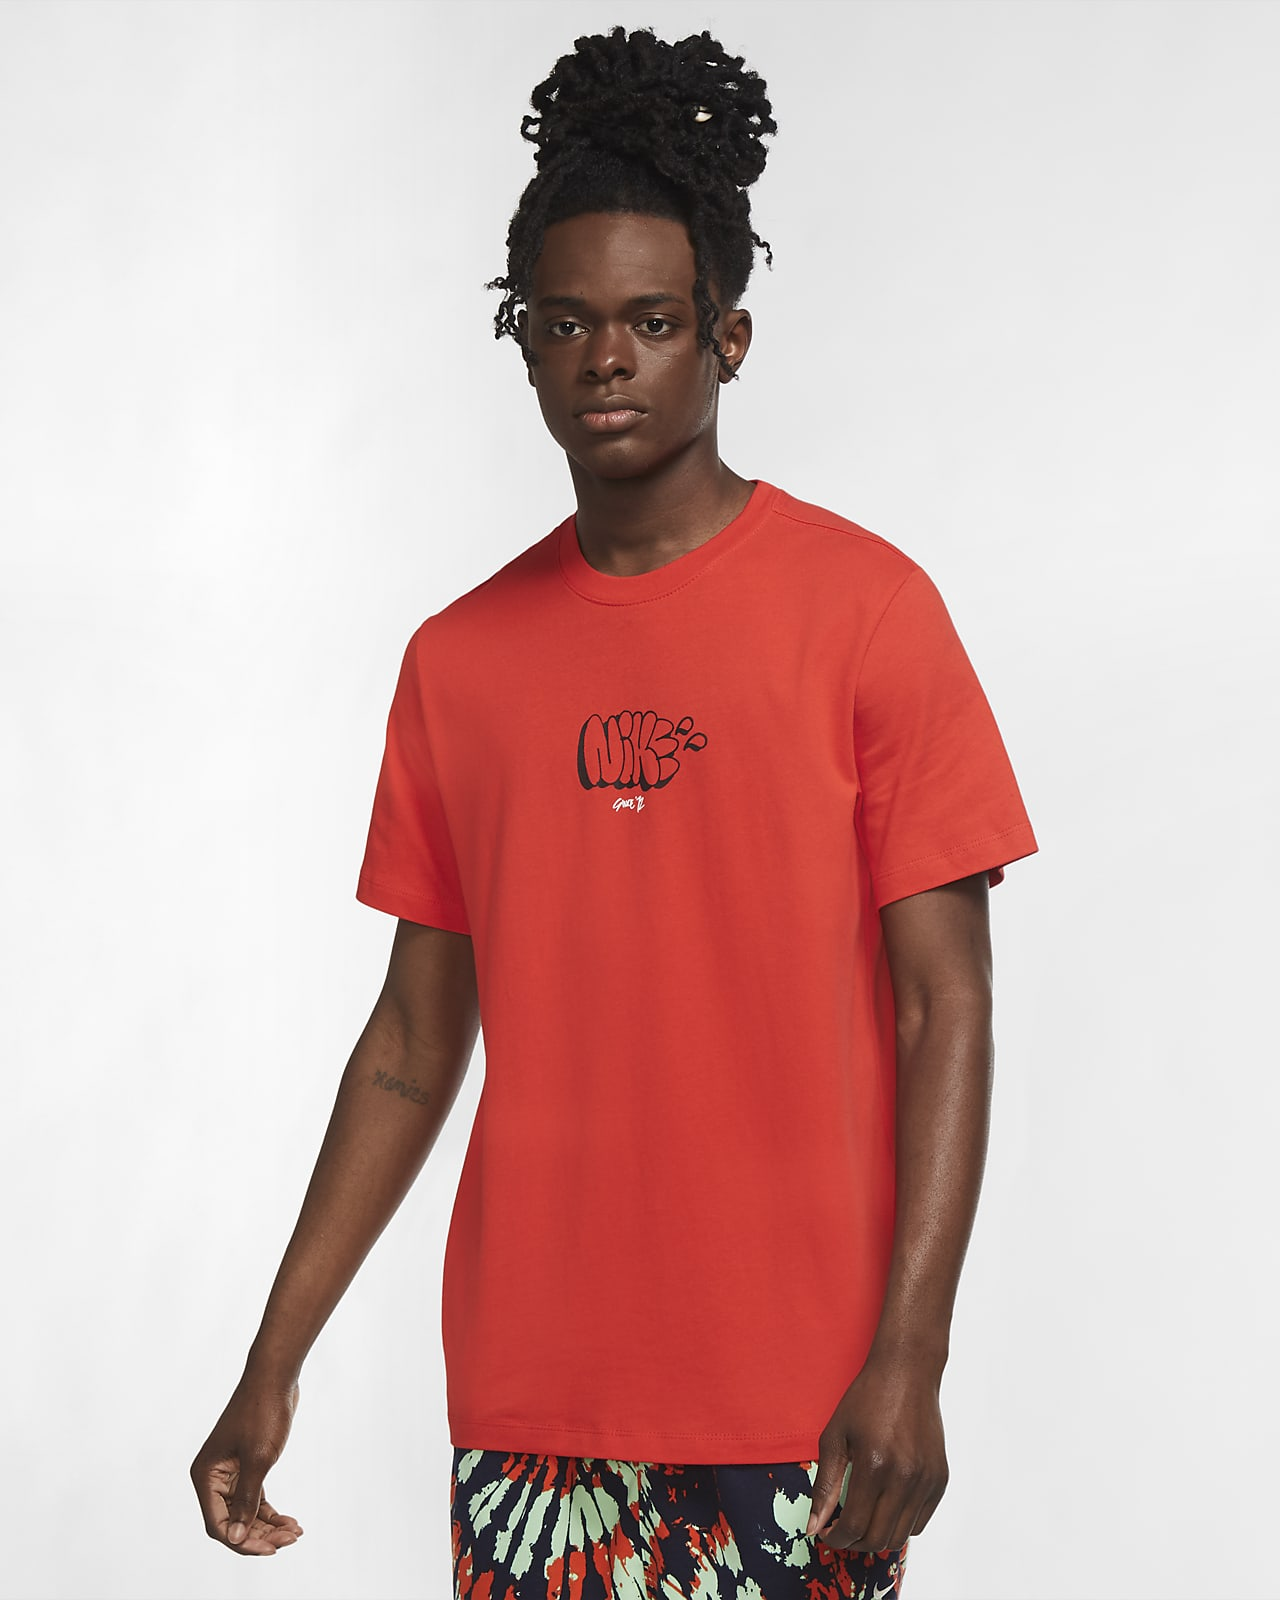 Nike Exploration Series Men's Basketball T-Shirt